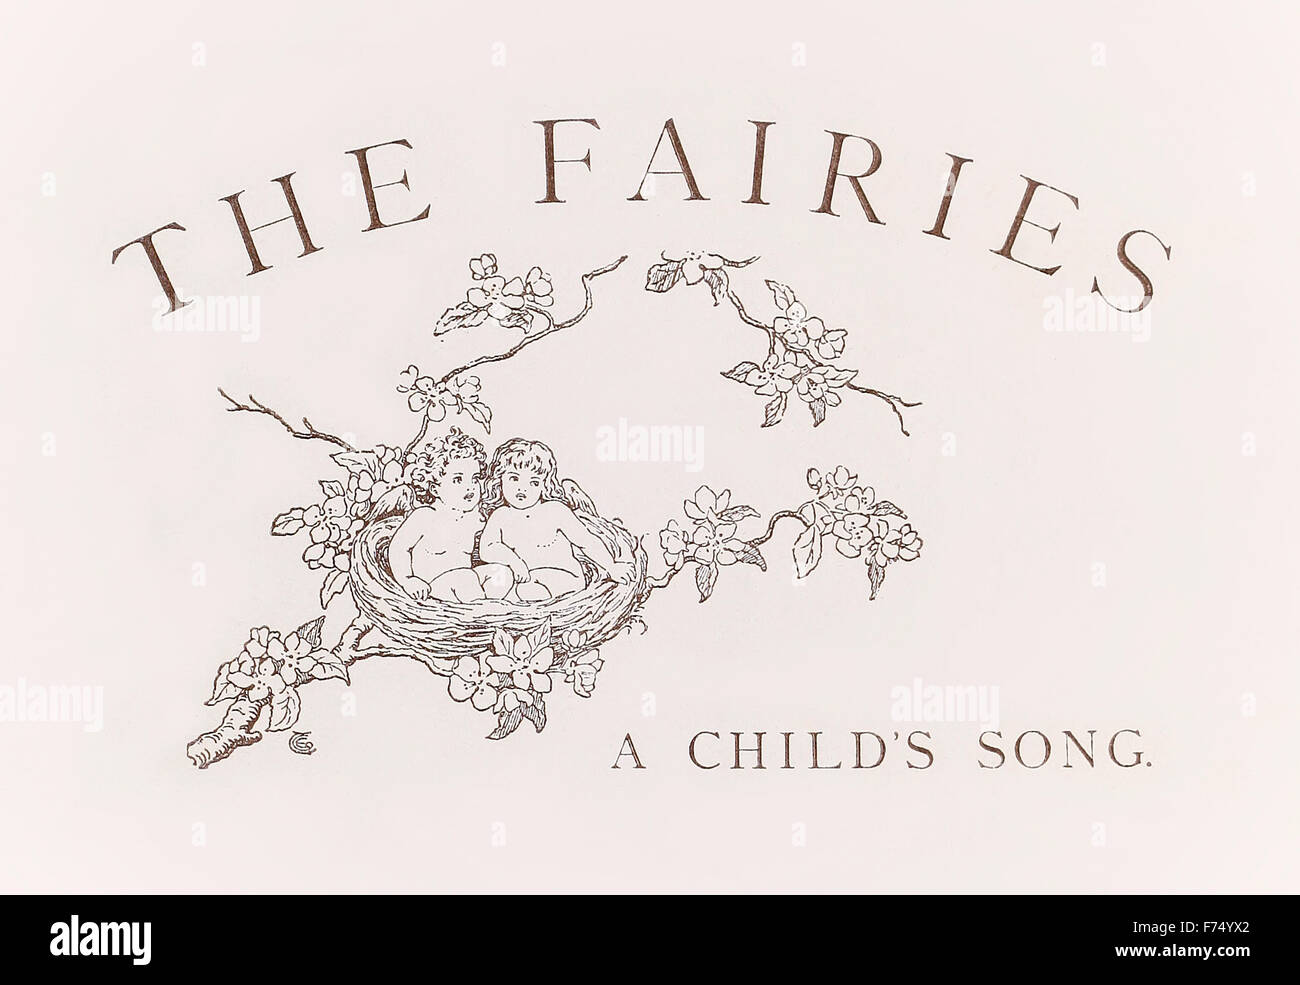 Title page from 'The Fairies – A Child's Song' by William Allingham (1824-1889), illustration by Emily Gertrude - Stock Image